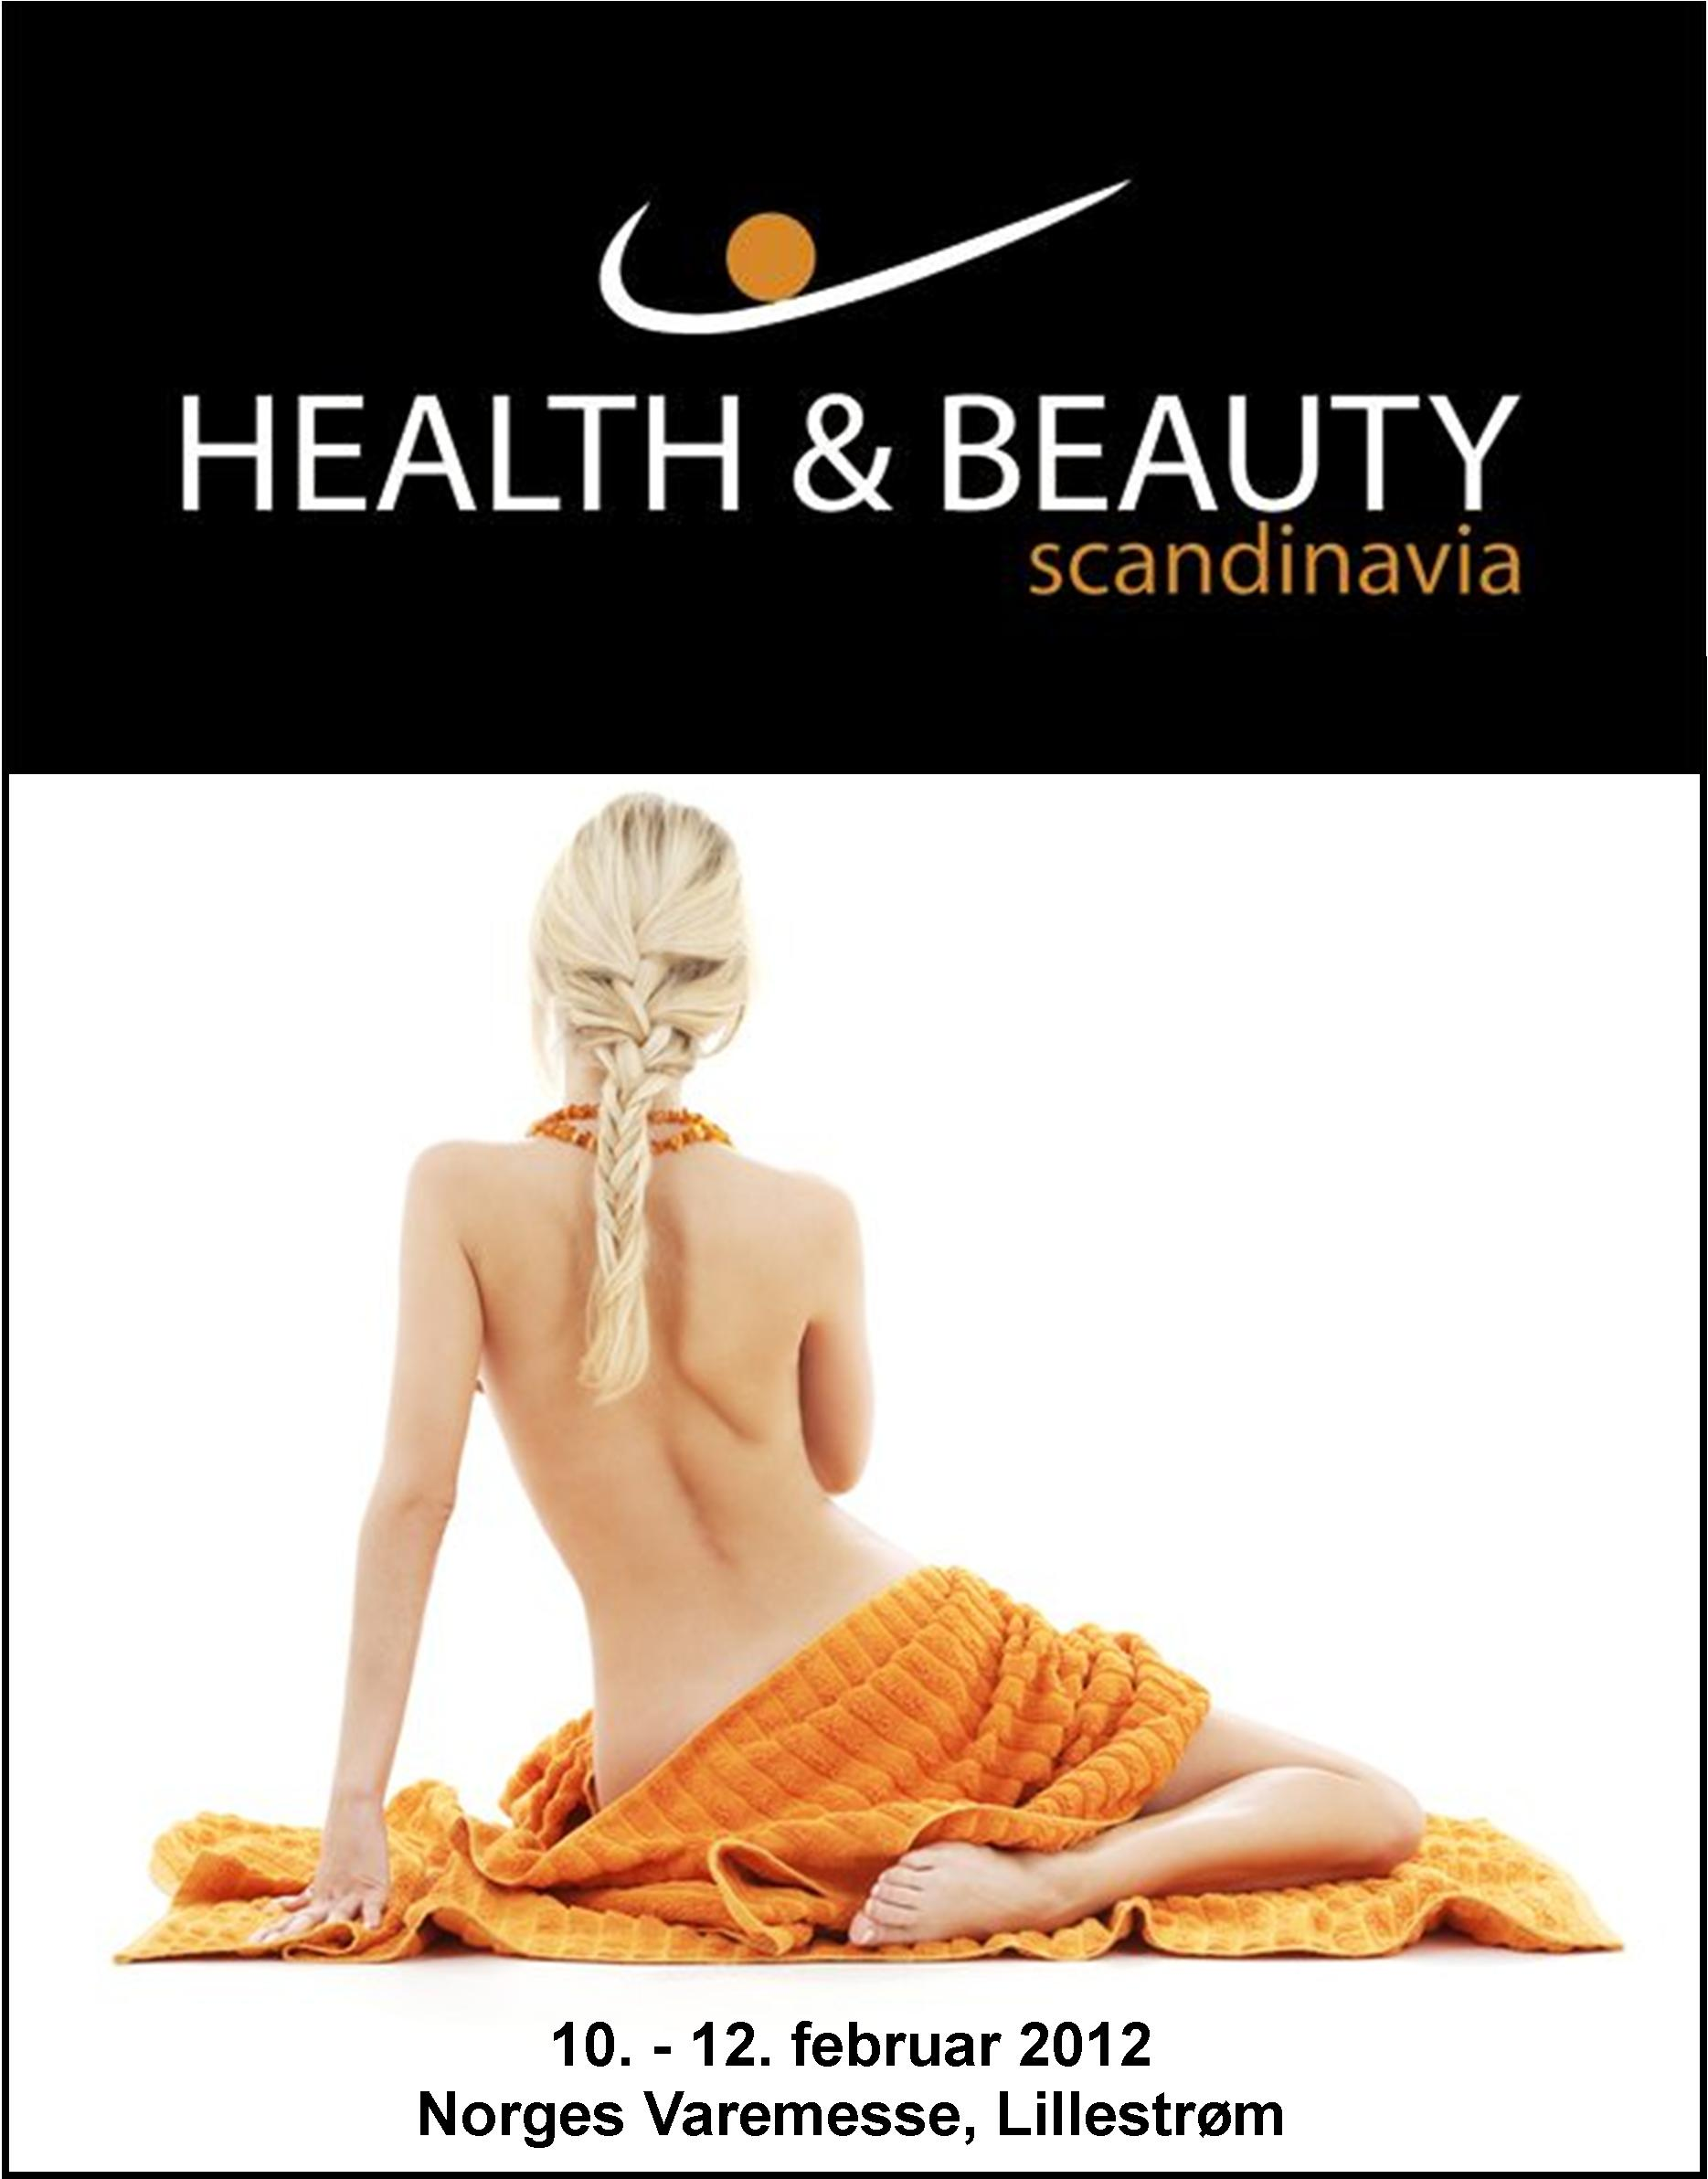 Health & Beauty 2012